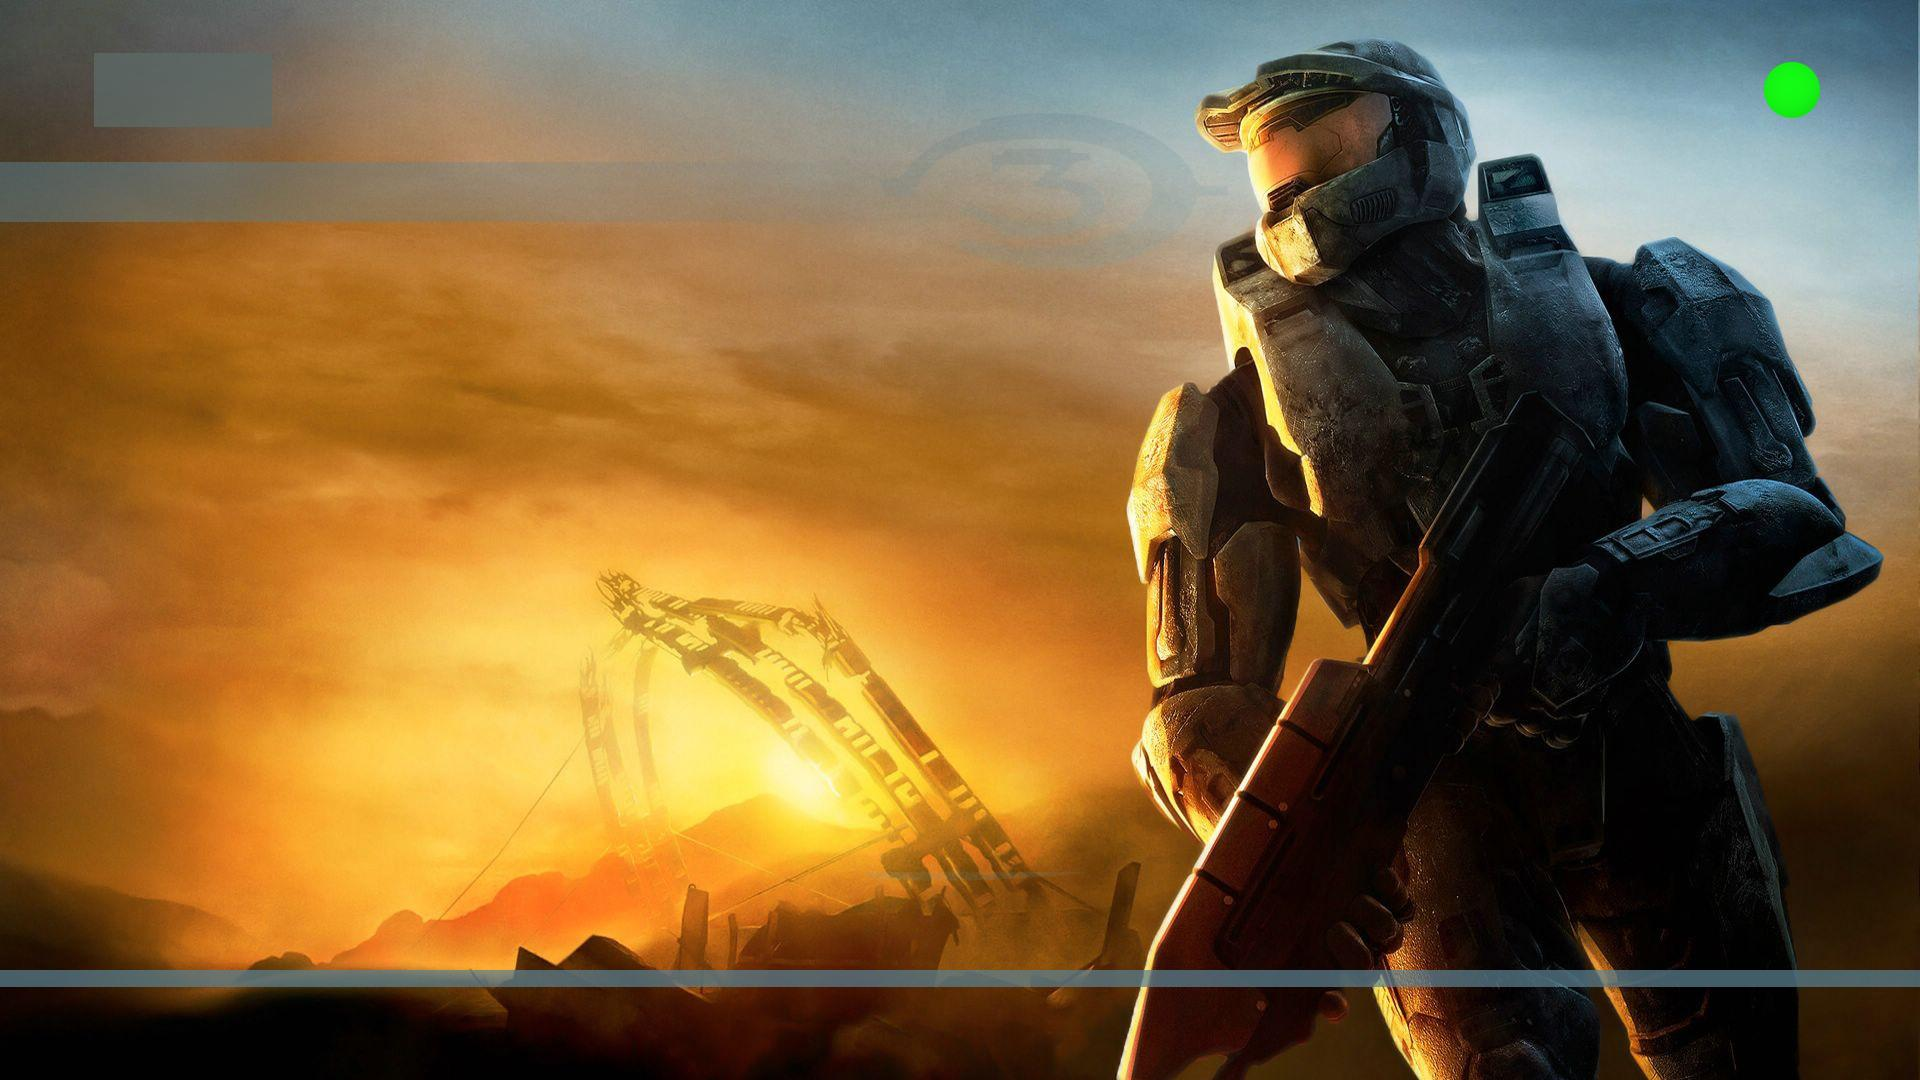 Halo Xbox One Wallpapers Top Free Halo Xbox One